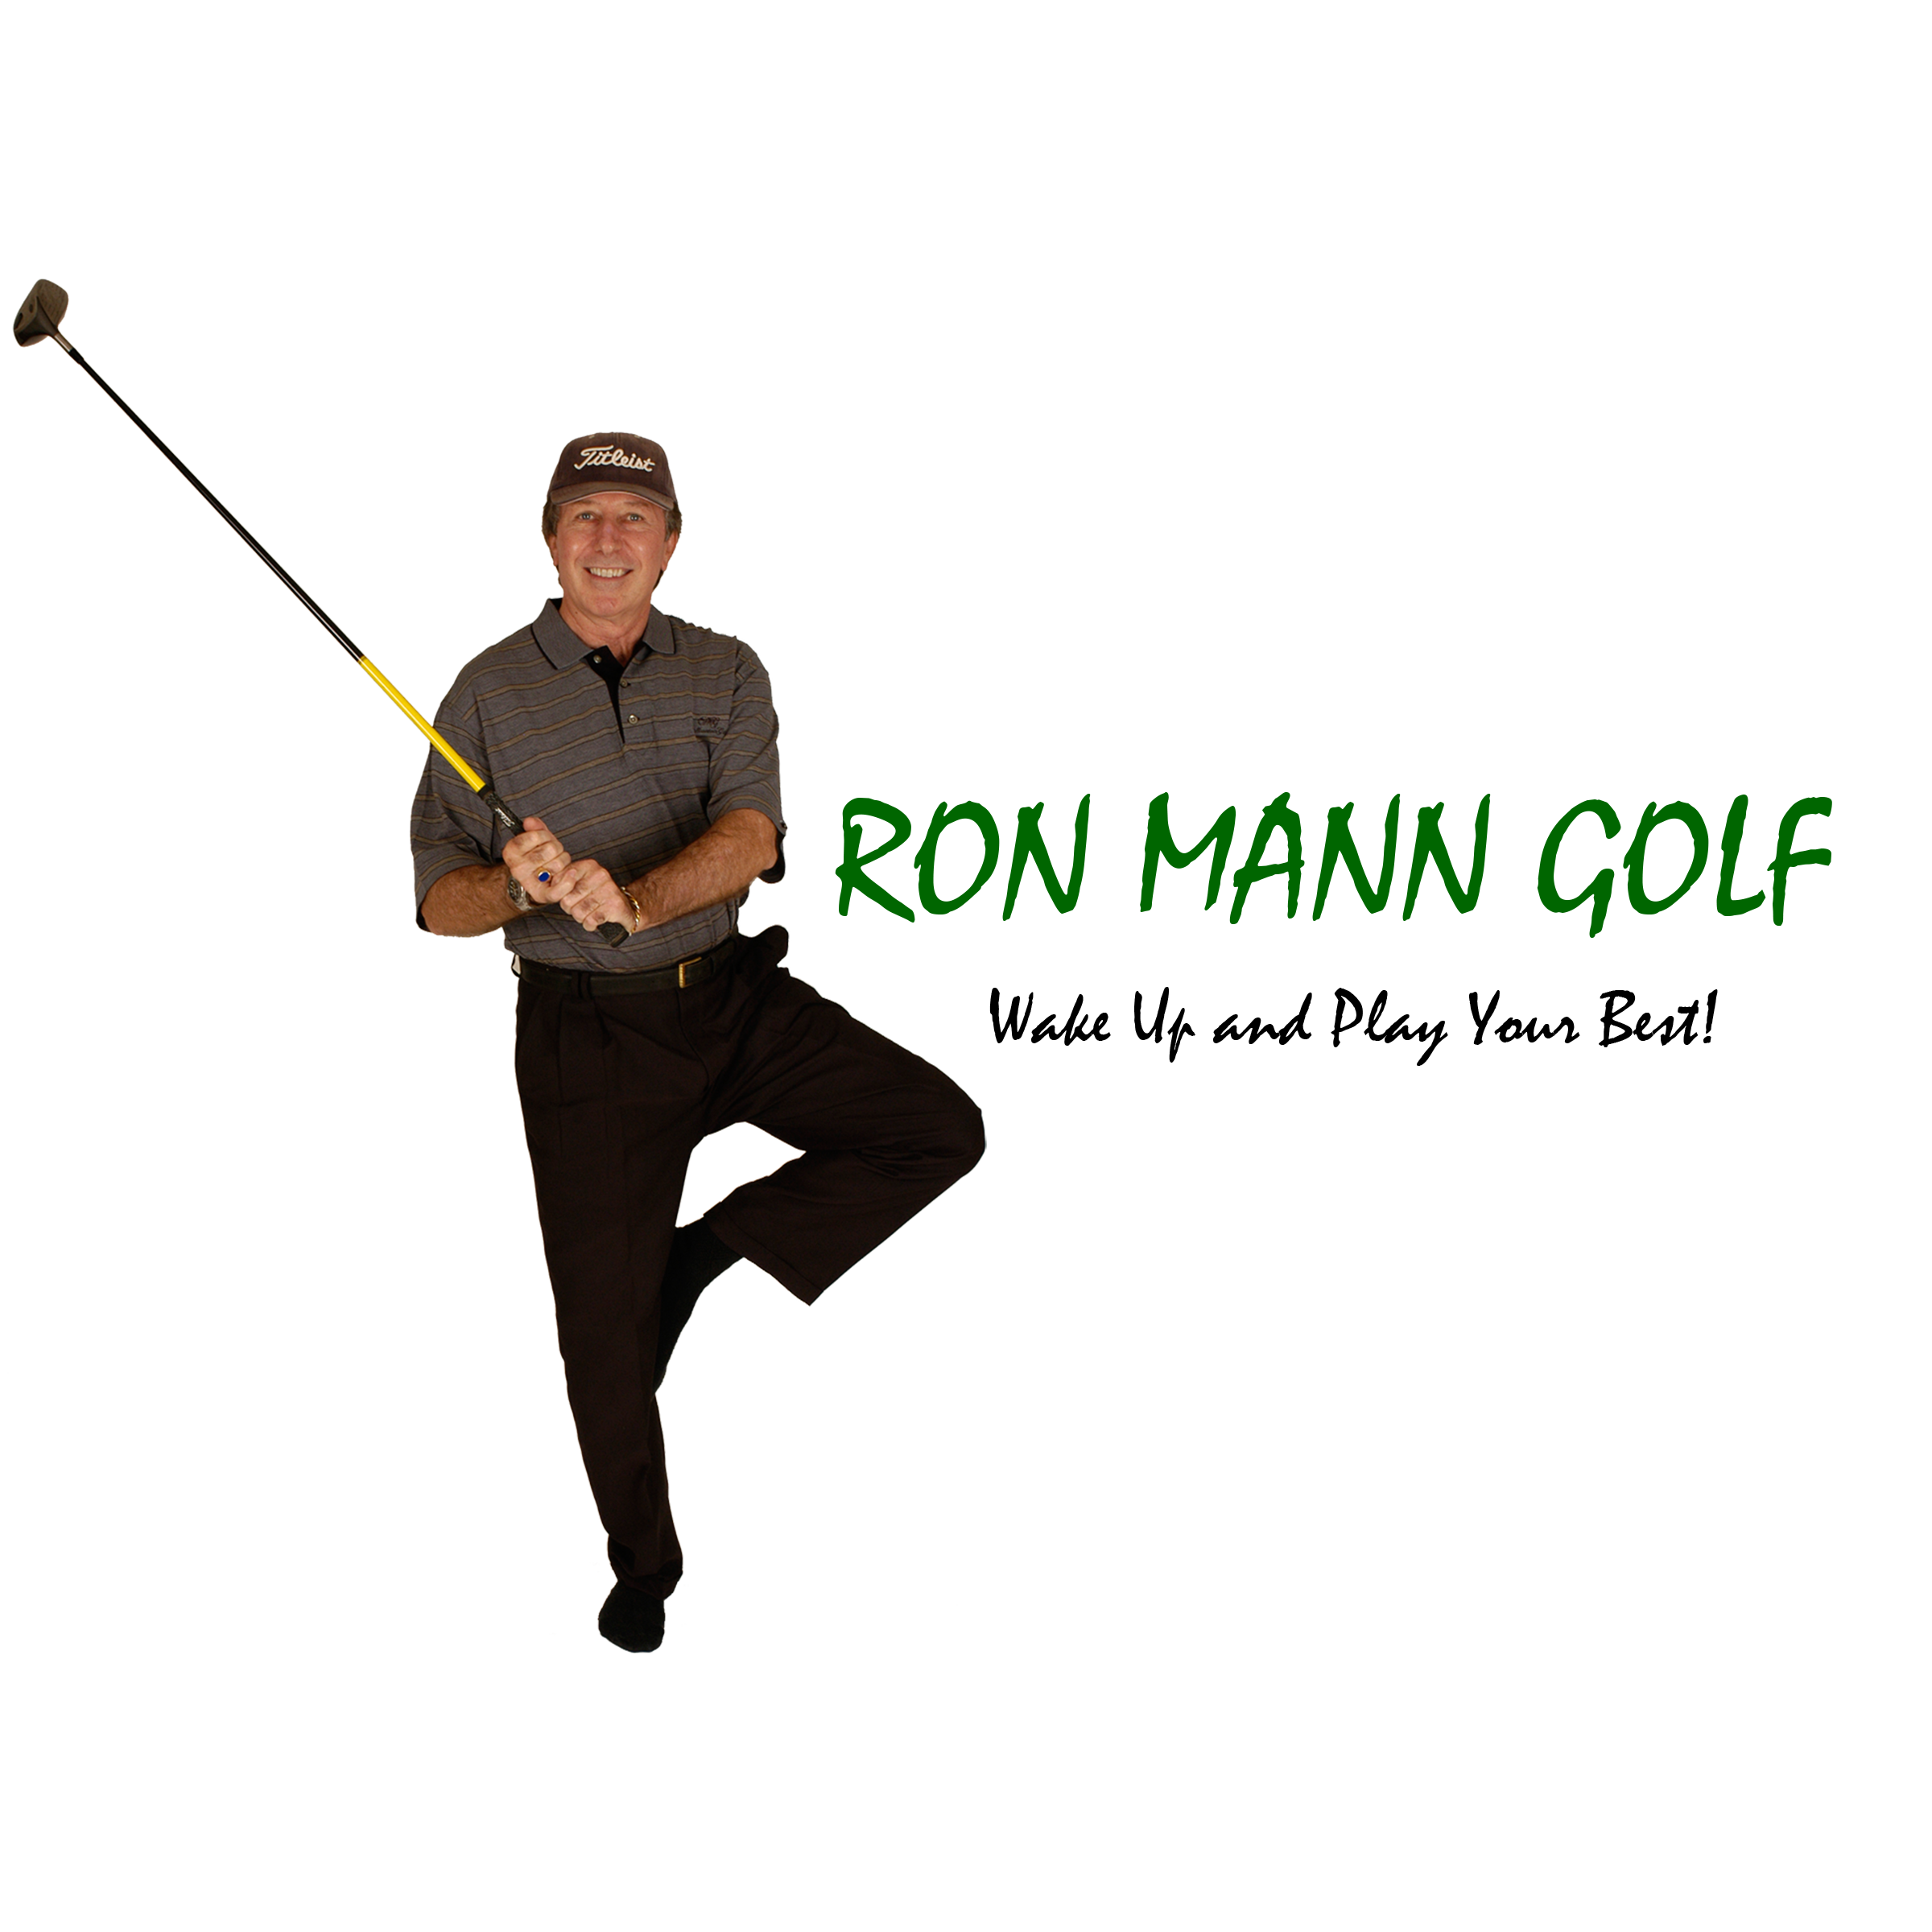 ron mann golf logo